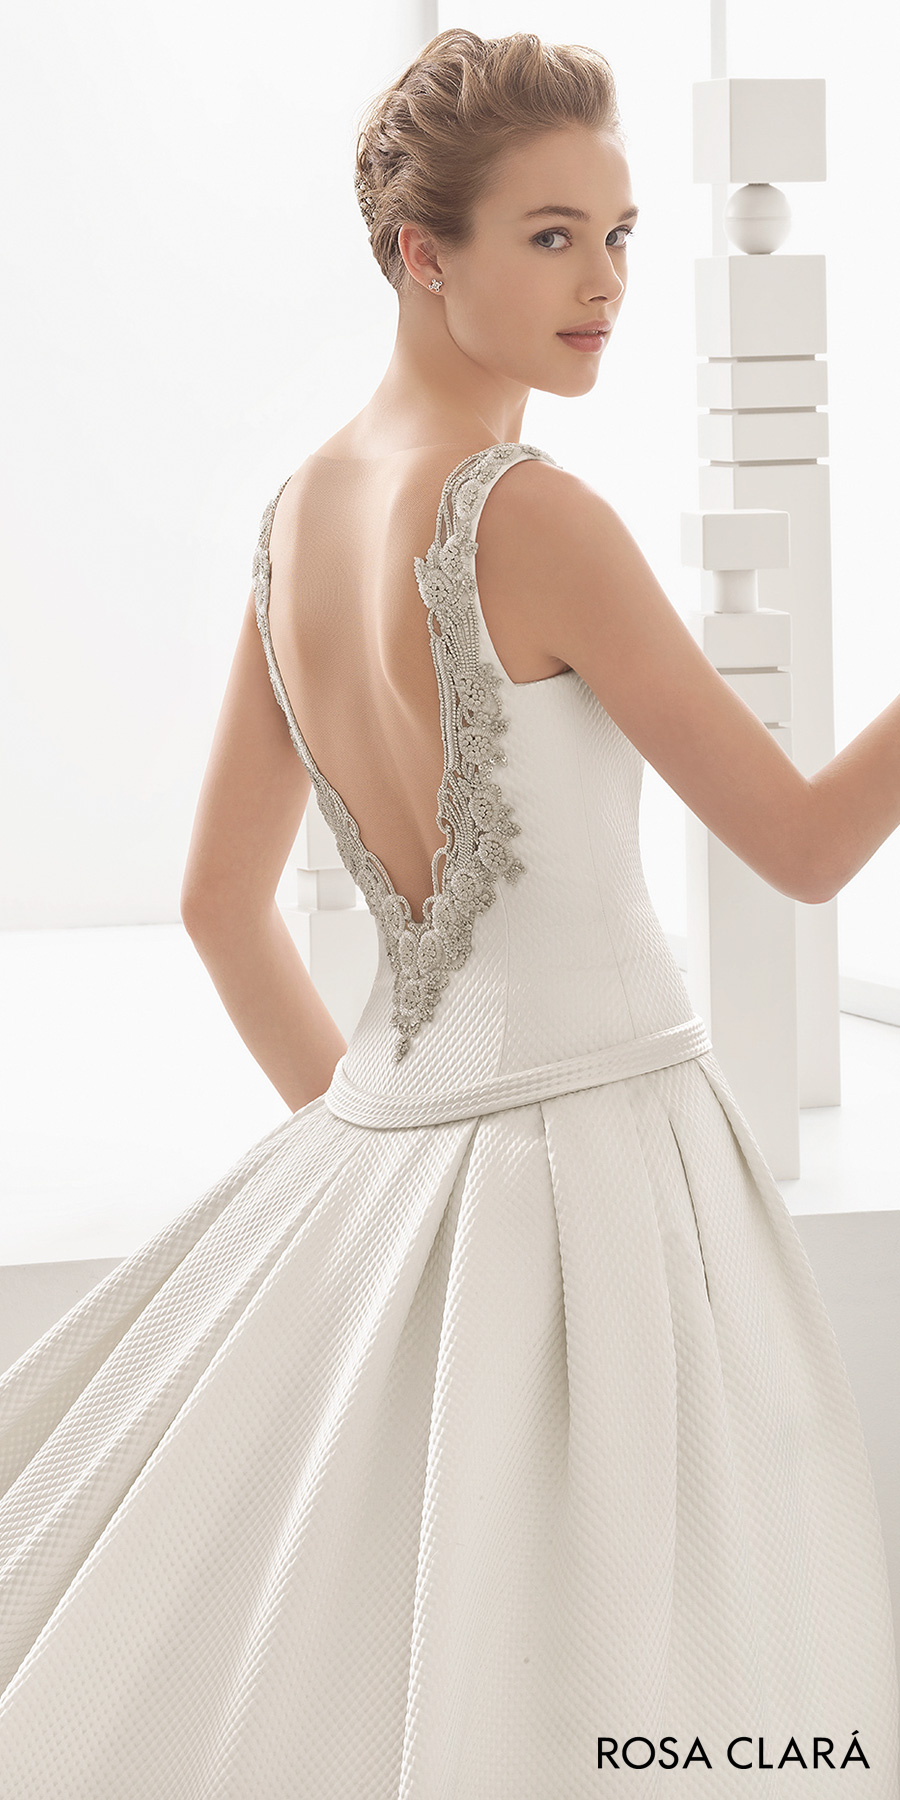 rosa clara 2017 bridal sleeveless bateau neck simple drop waist a  line wedding dress pockets open low back chapel train (nasia) zbv